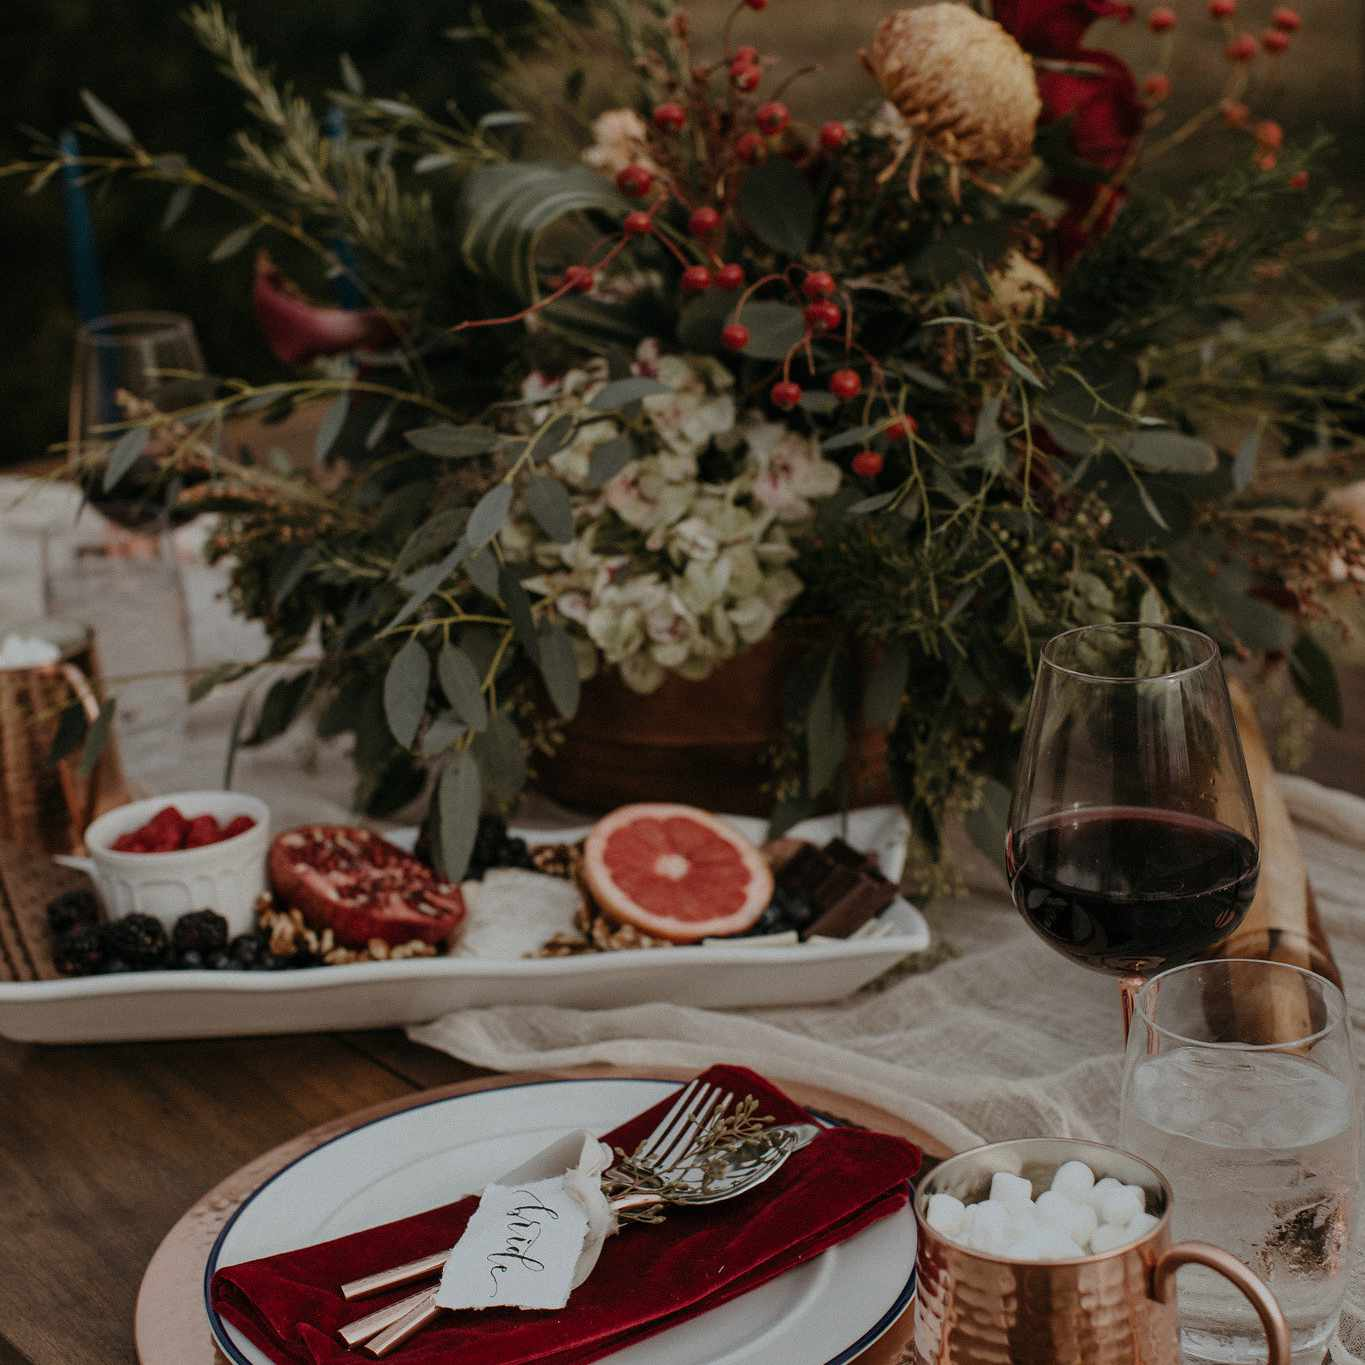 Winter wedding table setting with hot cocoa in a copper mug